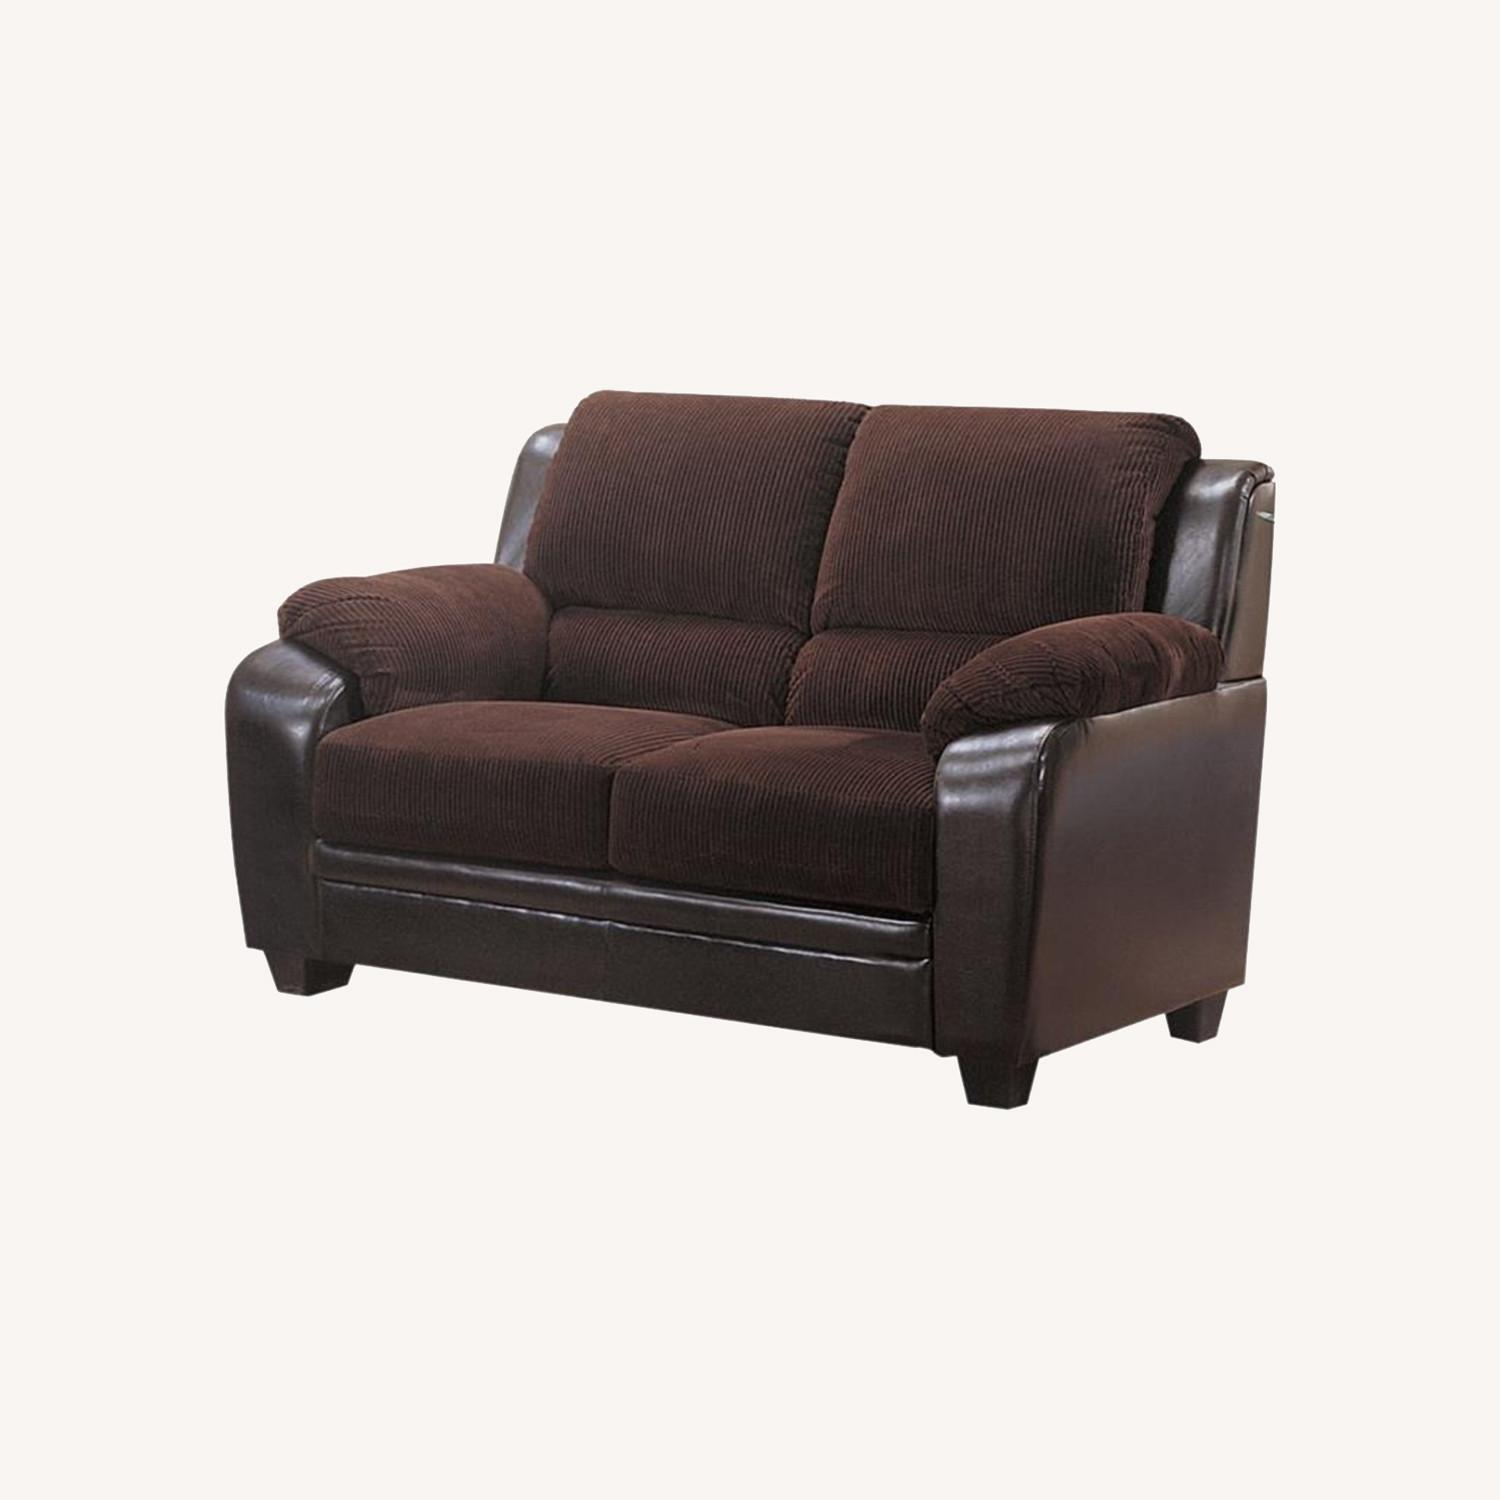 Loveseat In Rich Chocolate Leatherette - image-5